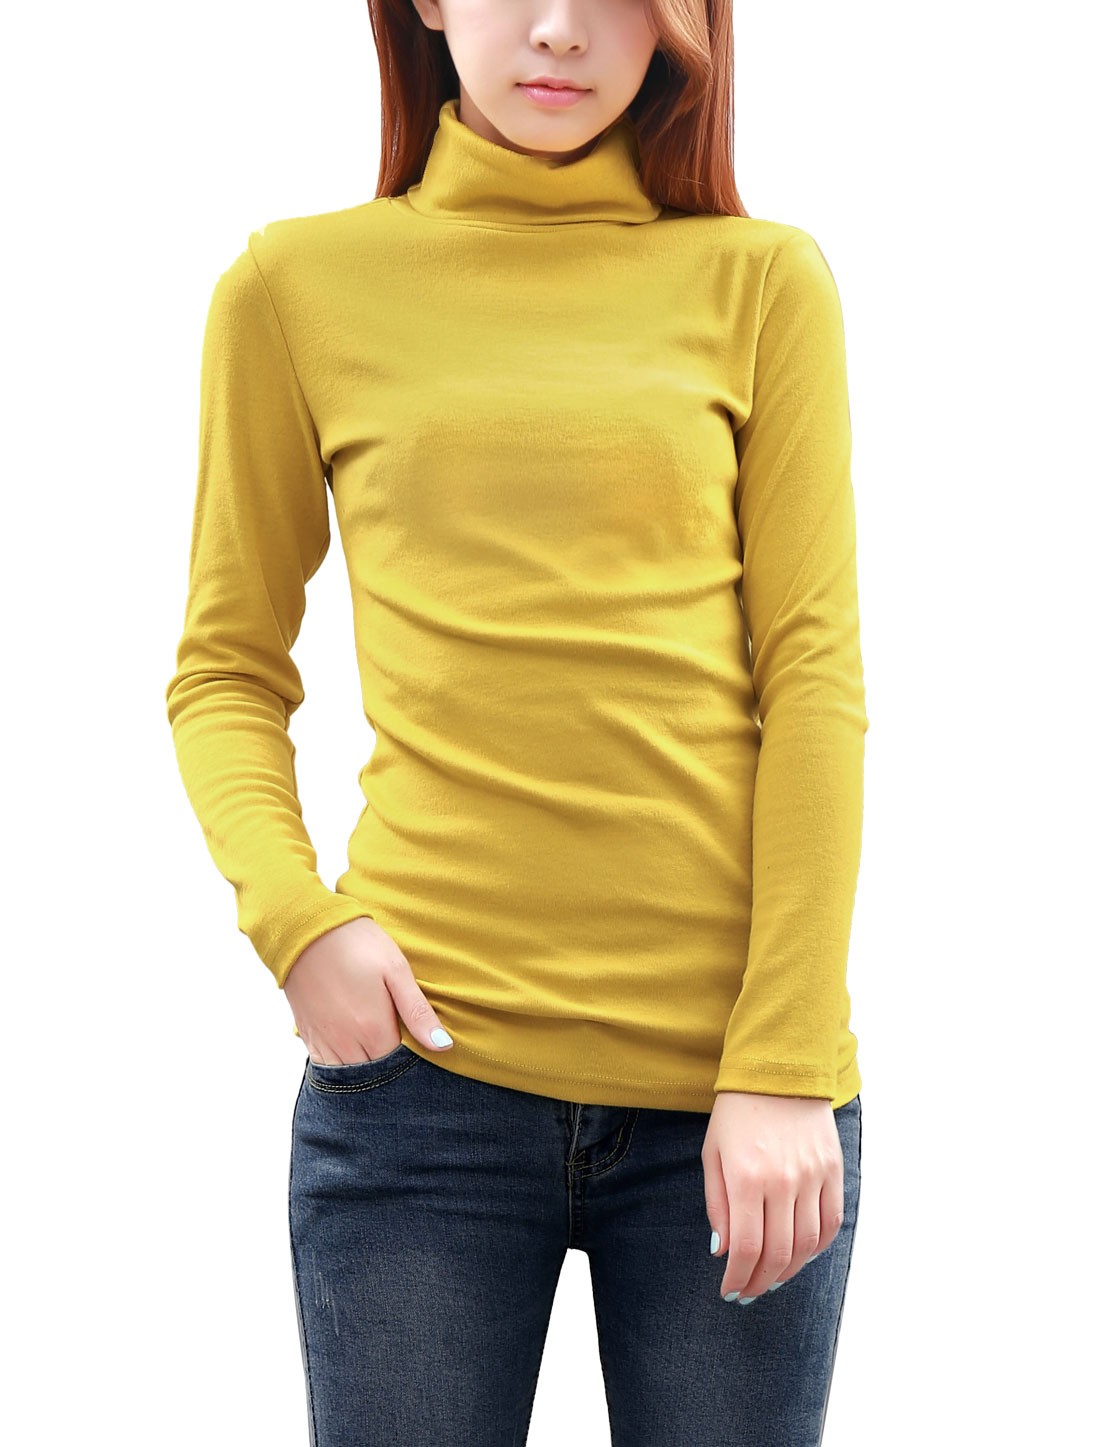 Ladies Turtle Neck Straight Fit Cutting Design Autumn Yellow Shirt XS